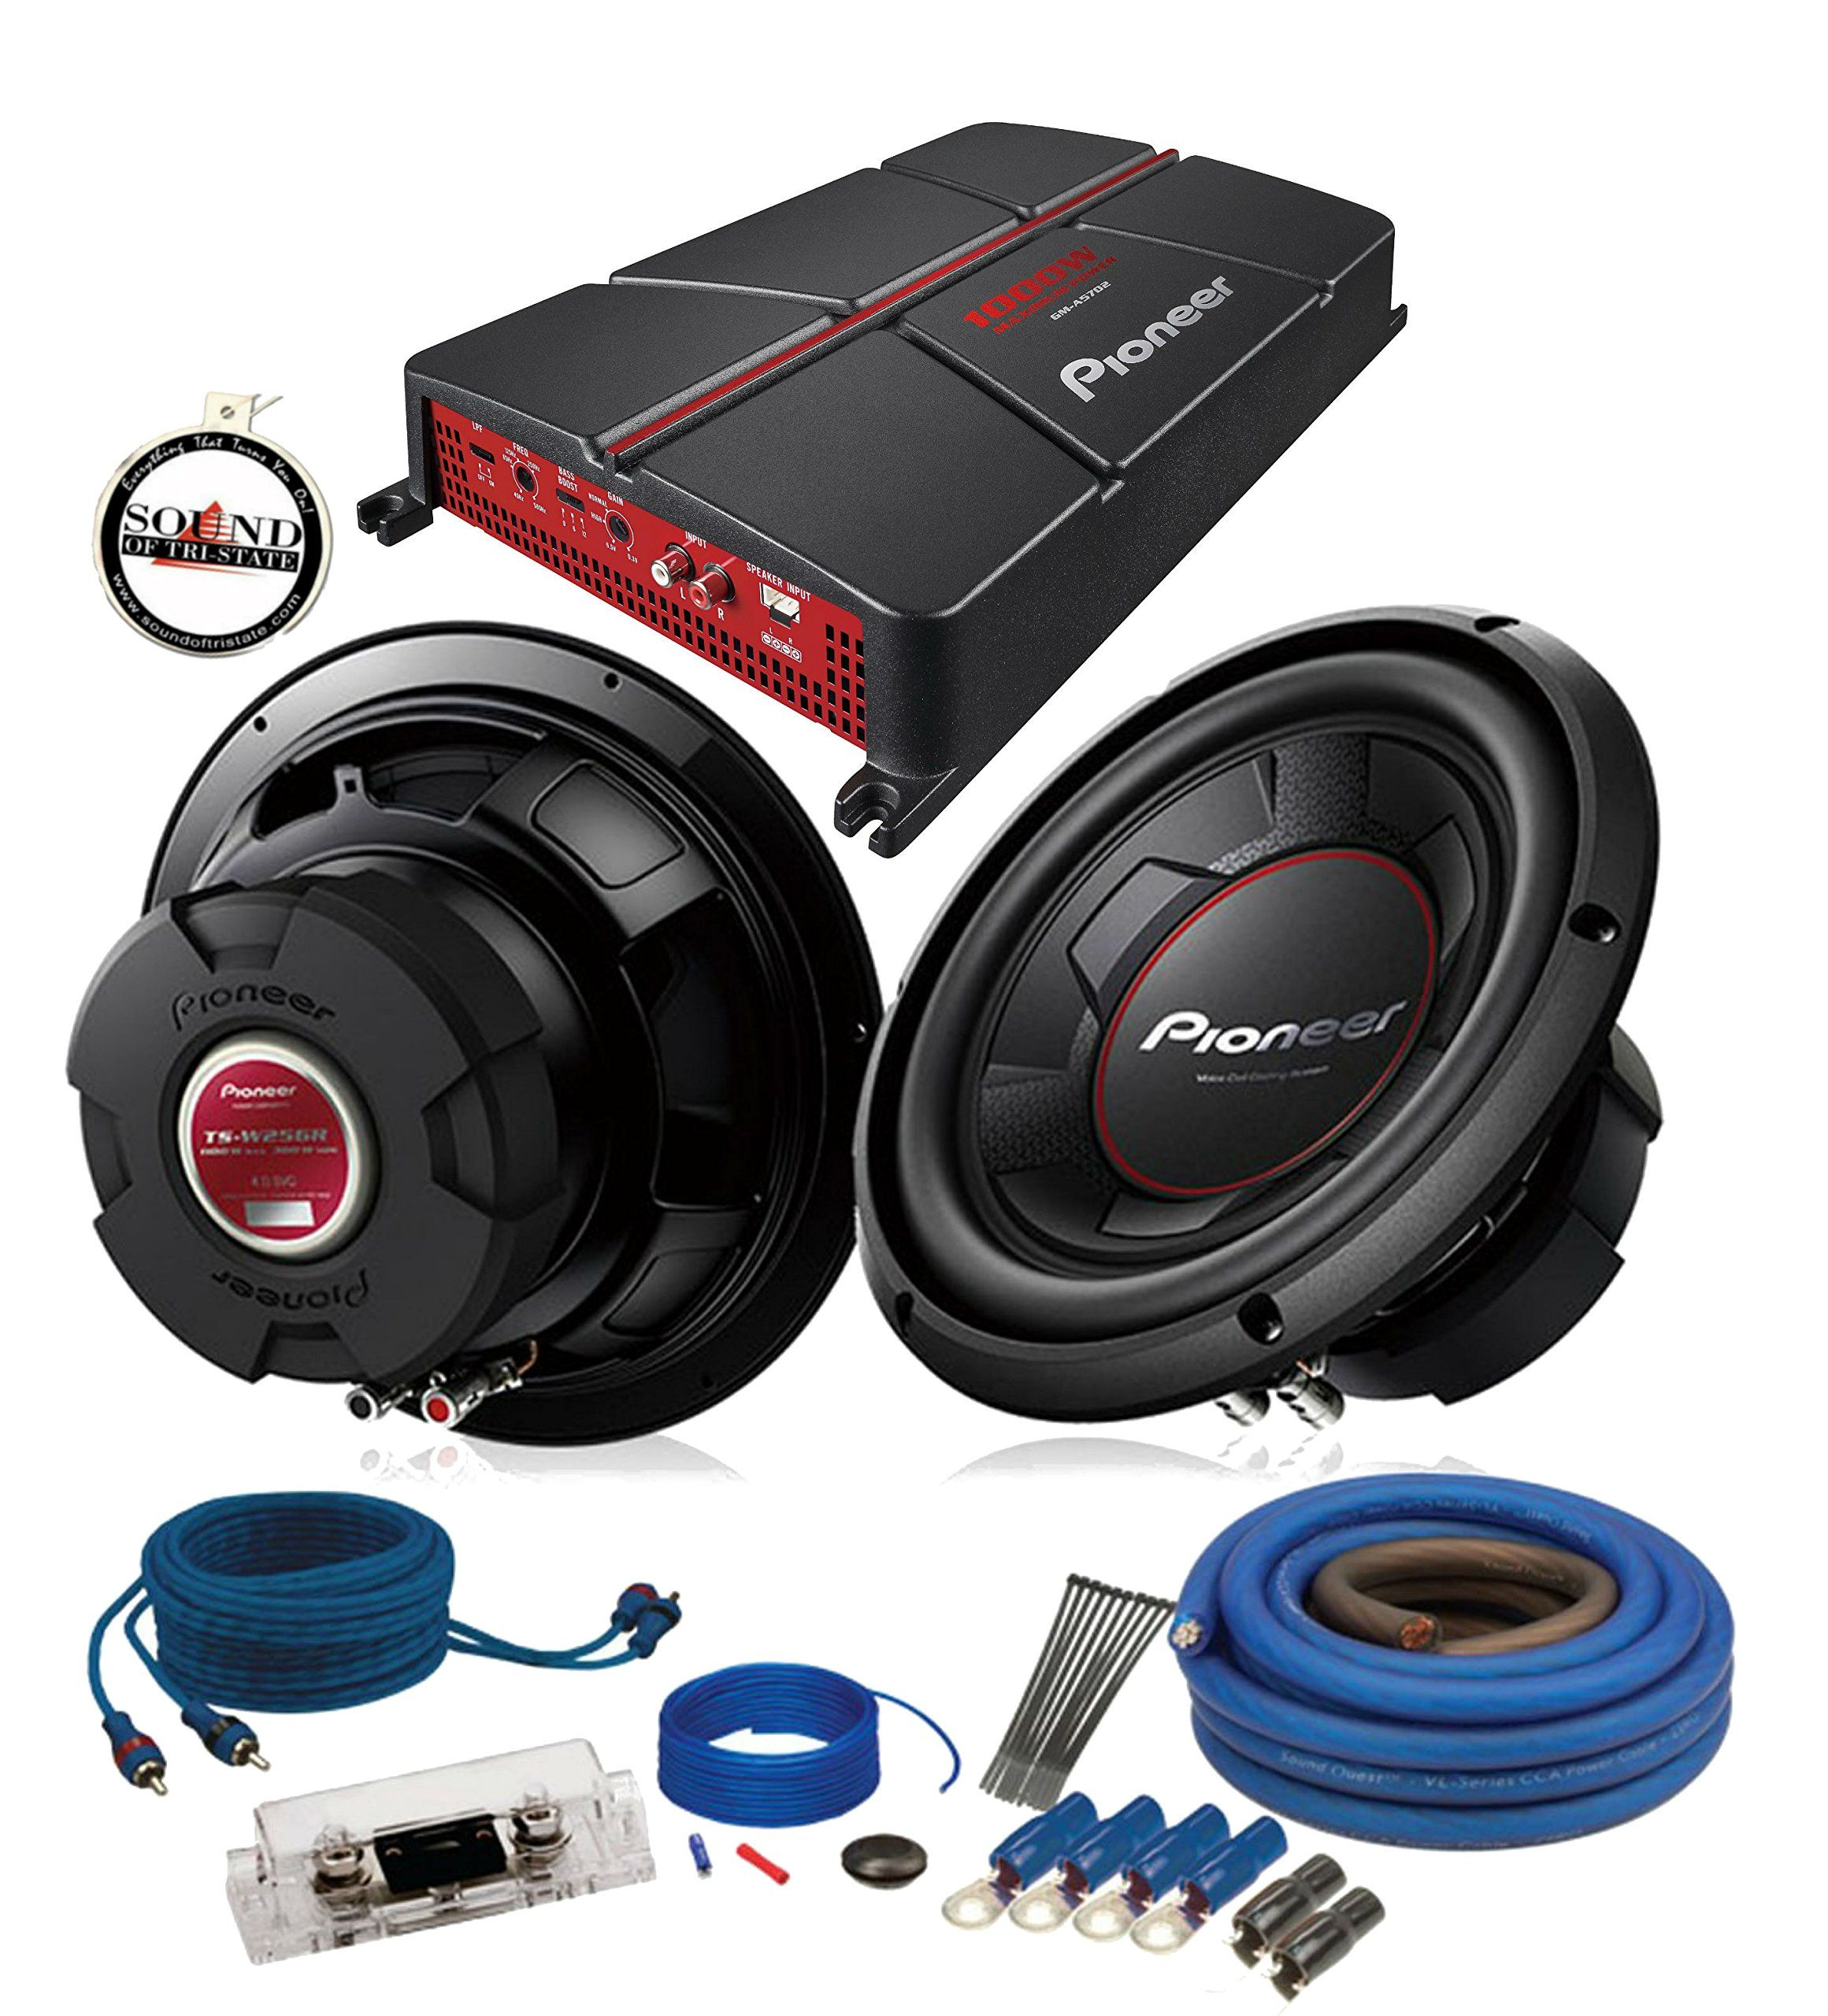 Pioneer Gm A5702 Amplifier With 2 Ts W256r 10 Subwoofers 4ga Subwoofer Amp Wiring Kit A Free Sots Air Freshener